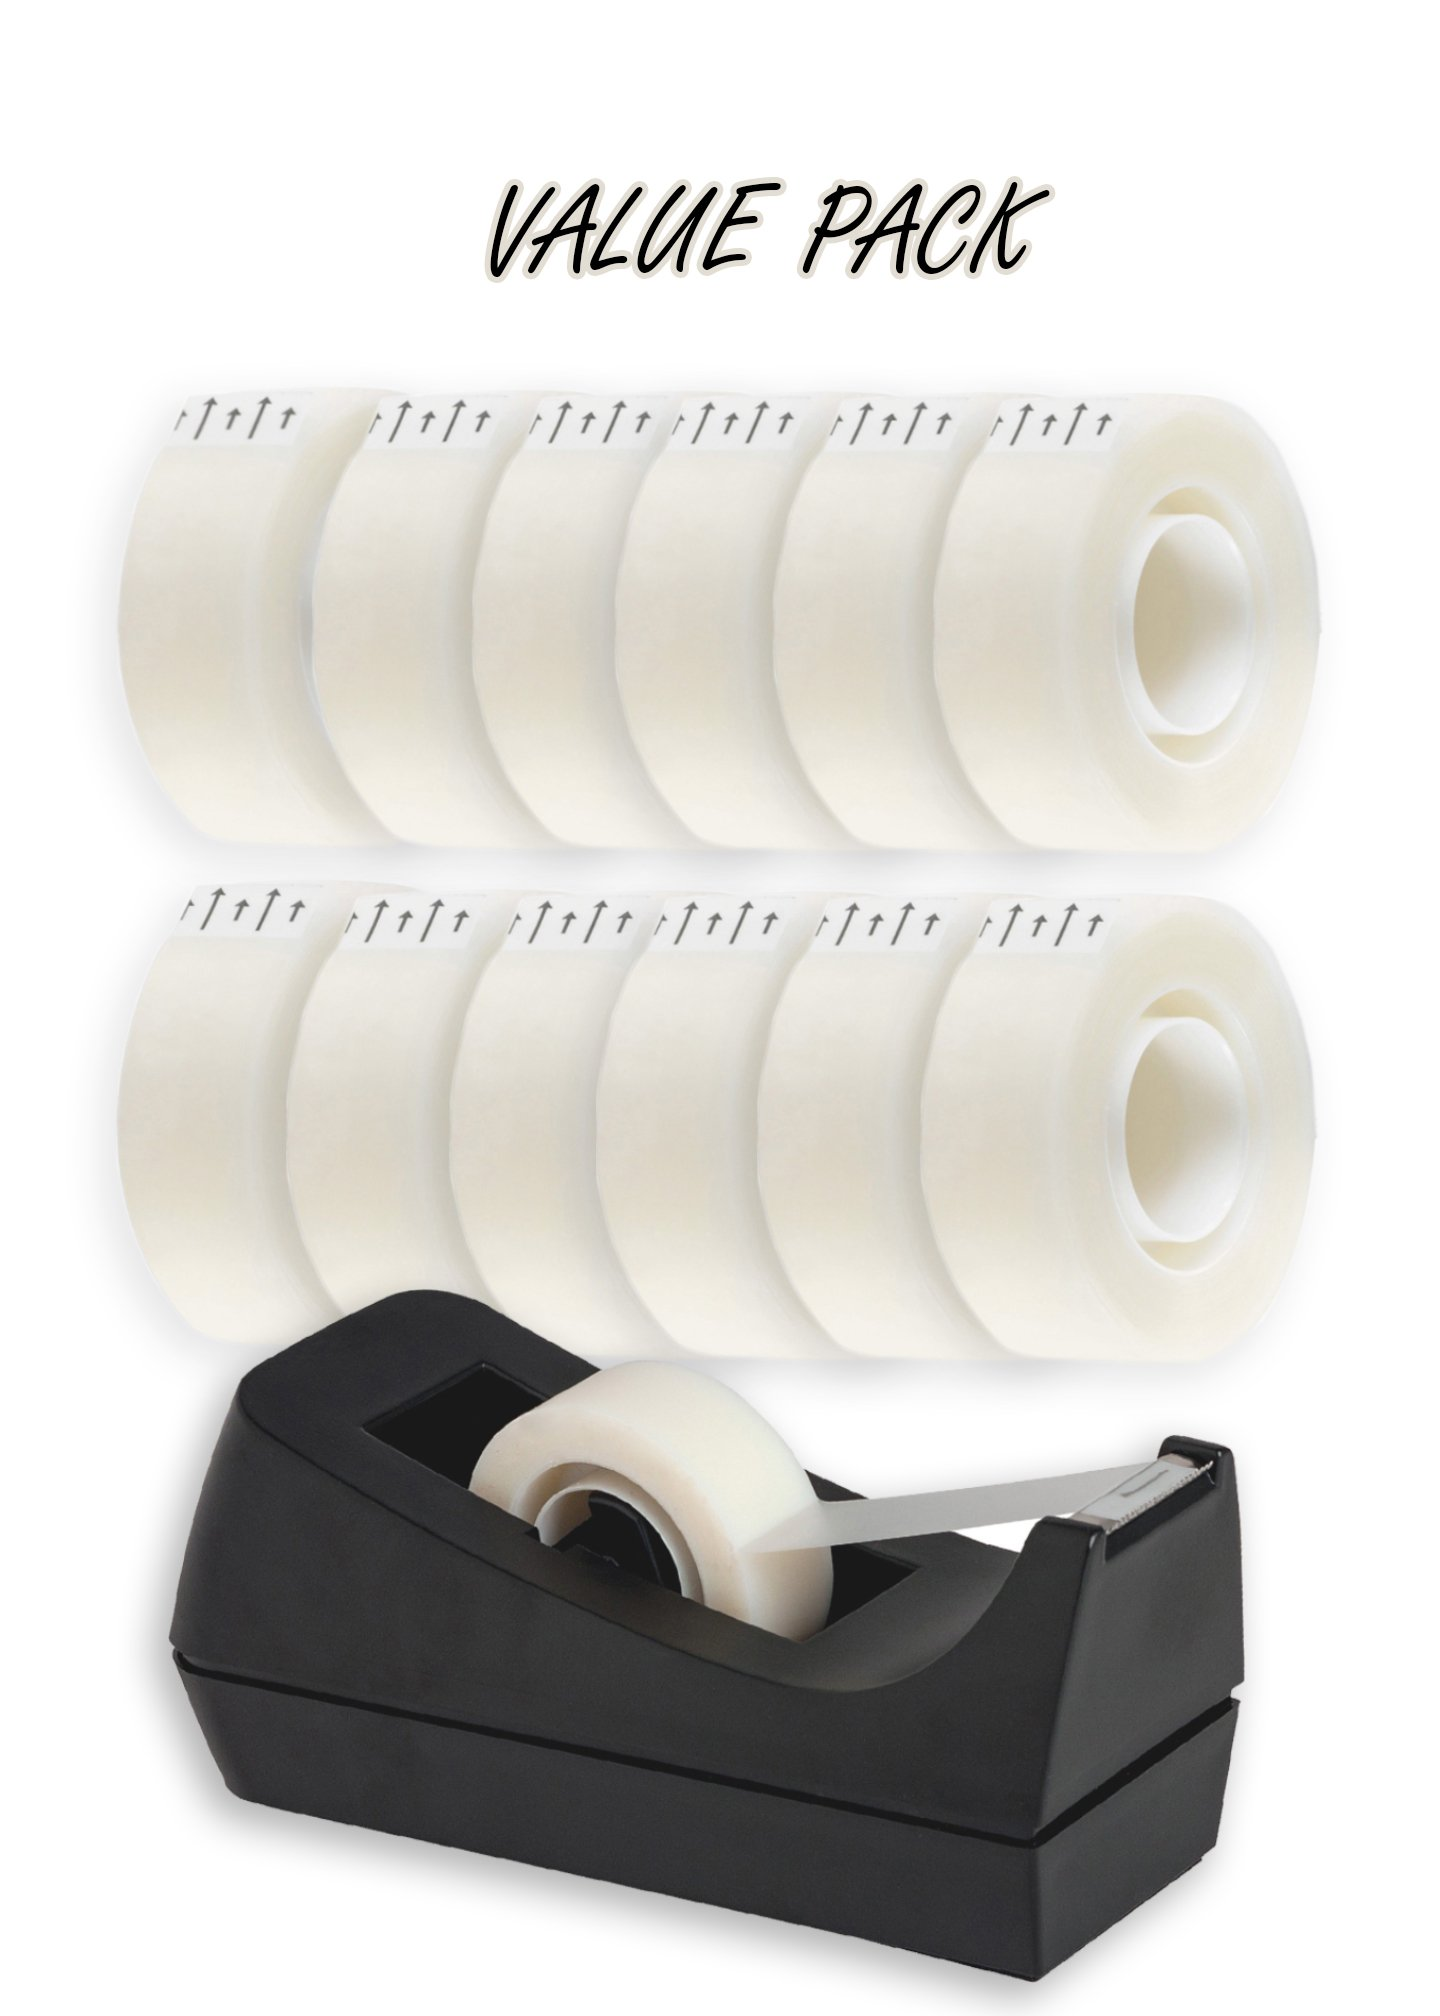 Desktop Tape Dispenser, Non-skid Base - With 12 Premium Rolls Invisible Clear Tape, Perfect For Office, Home, School - Value Pack